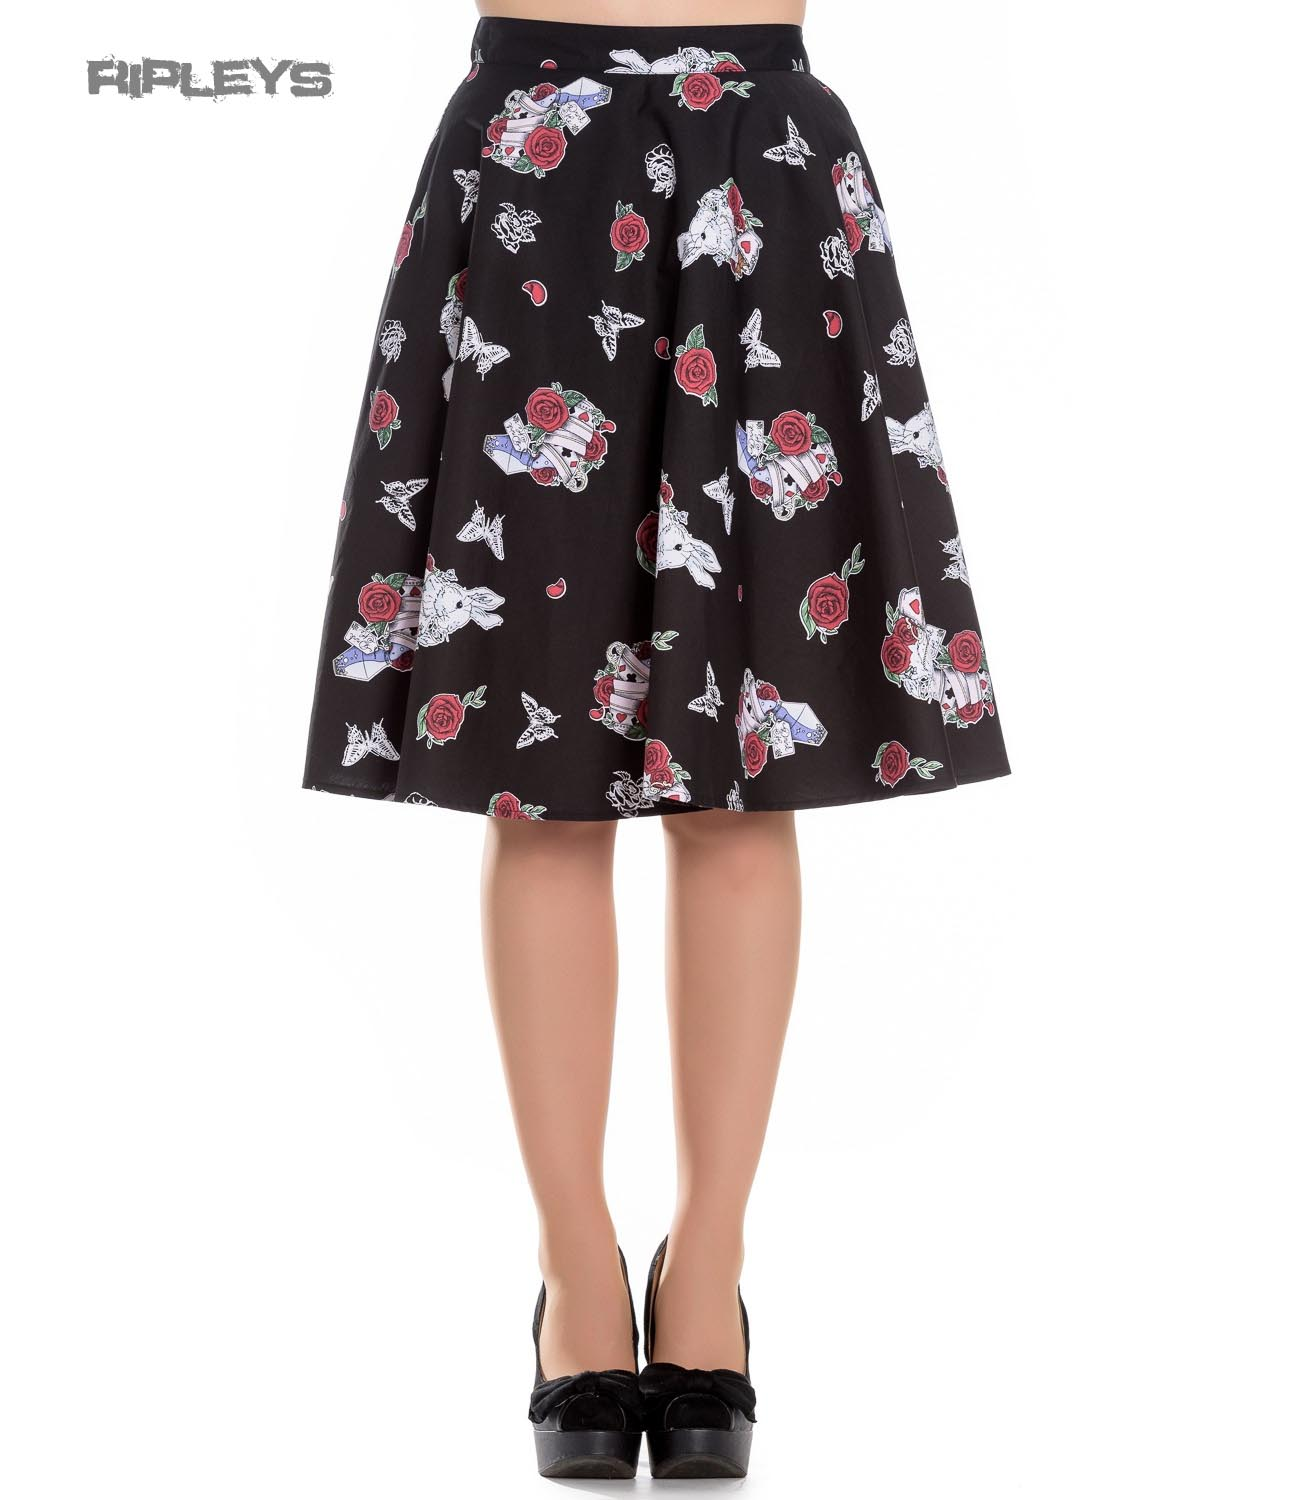 b25648d891fd Hell Bunny Pin Up Alice in Wonderland 50s Skirt DRINK ME .